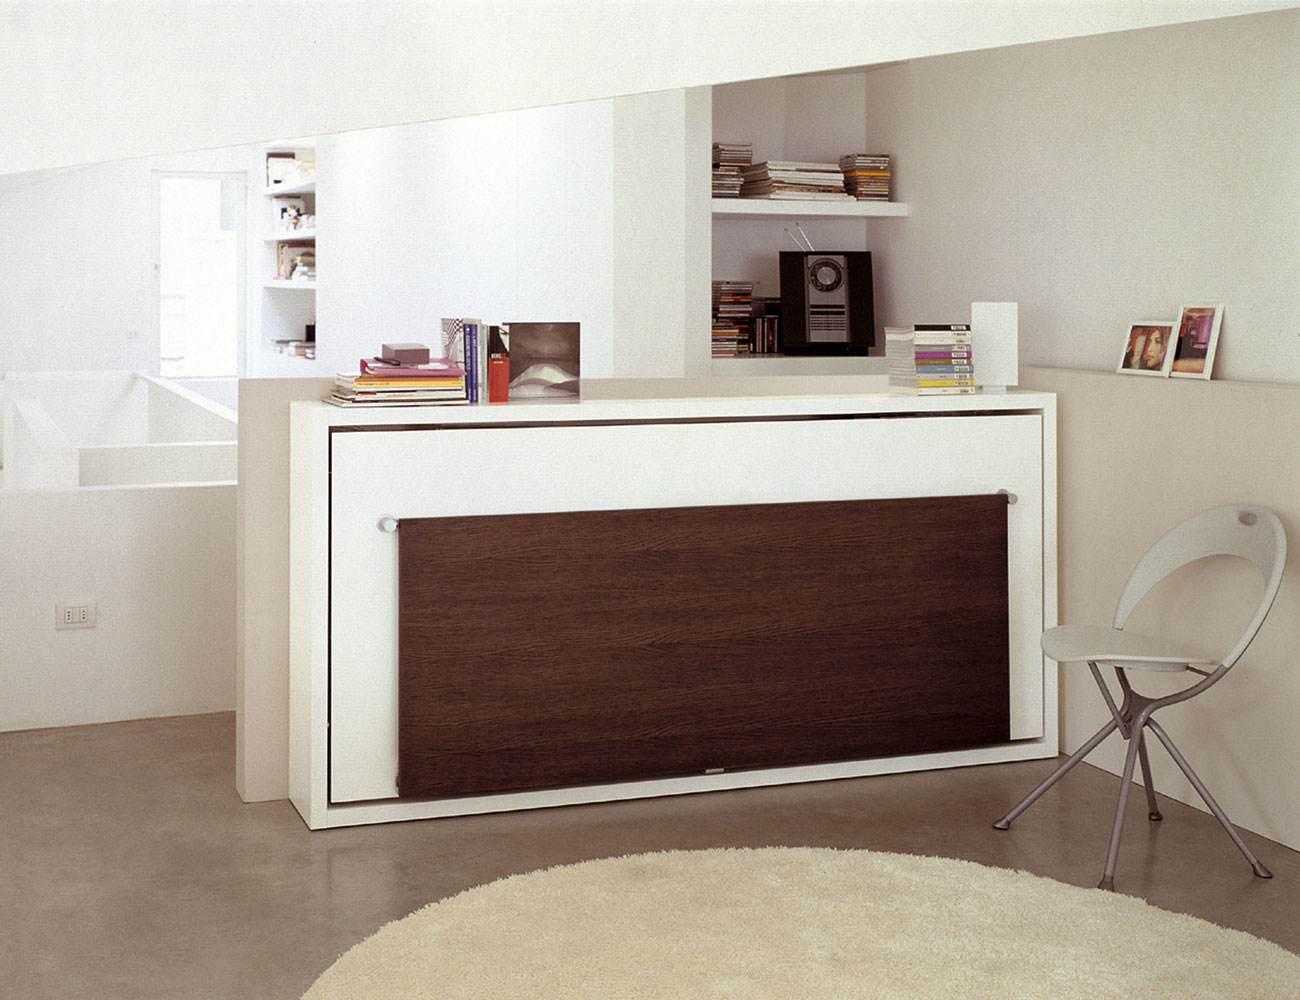 Poppi Desk wall bed by Clei